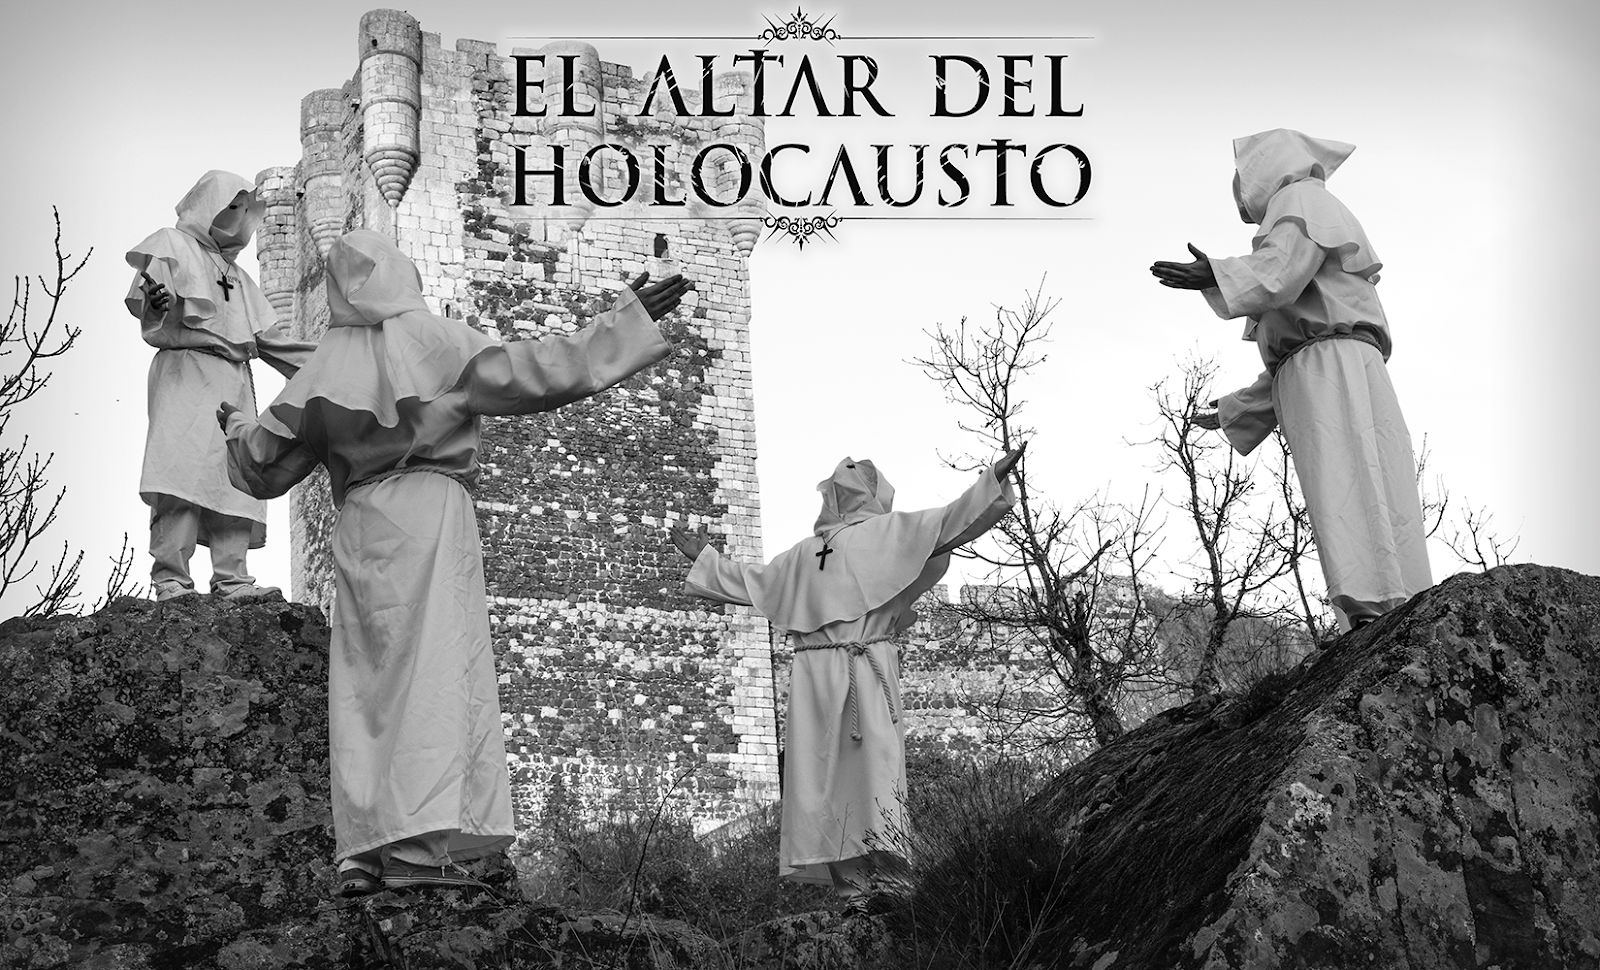 El altar del holocausto photo band